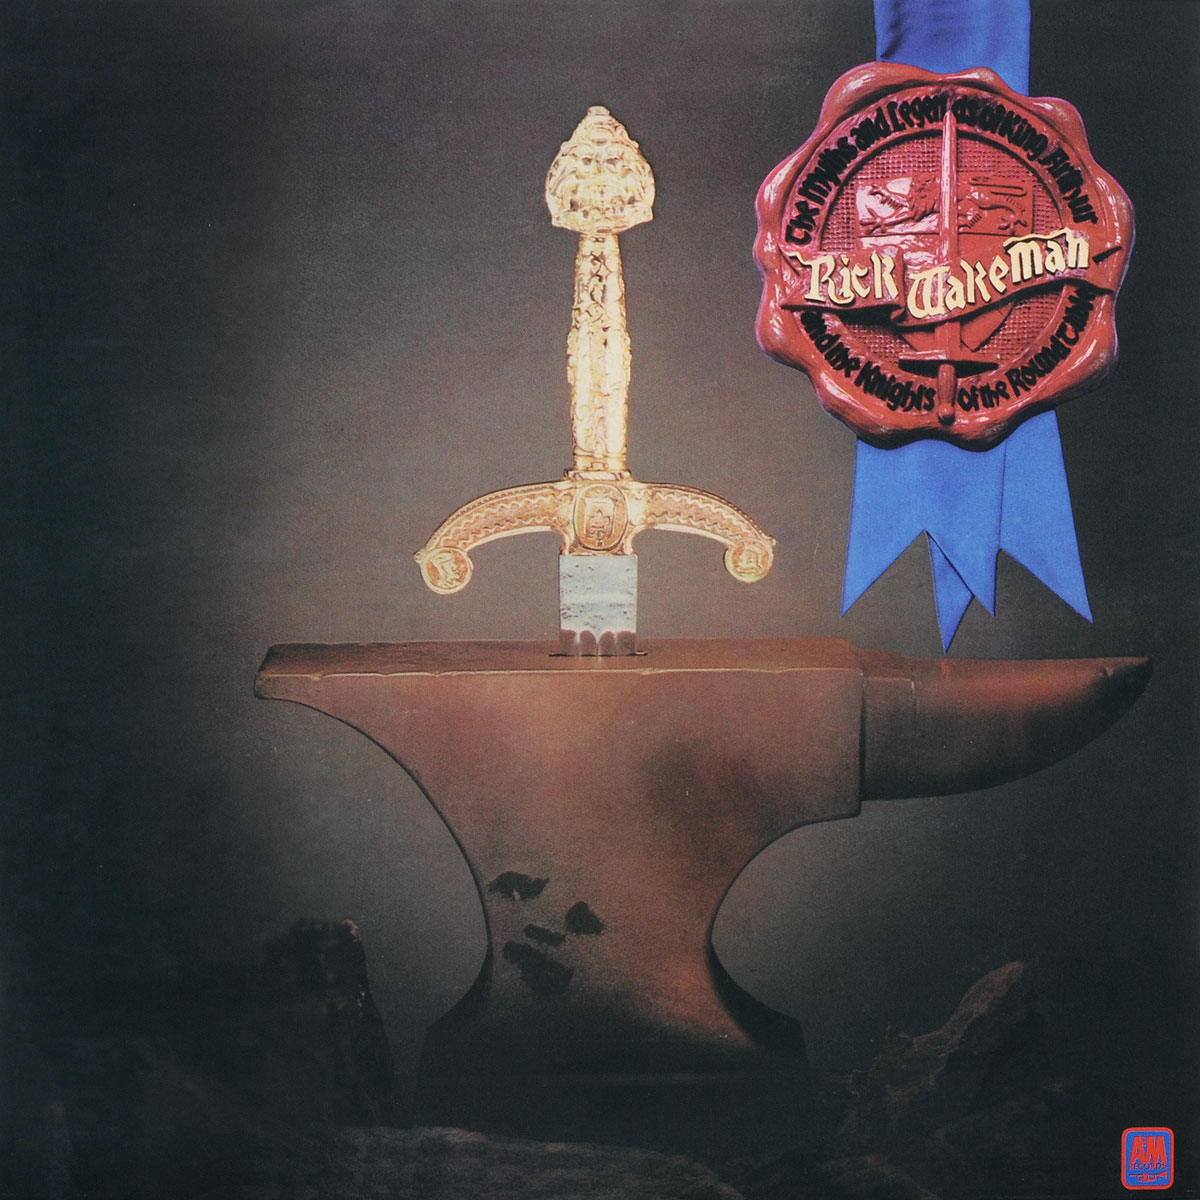 Рик Уэйкман Rick Wakeman. The Myths And Legends Of King Arthur And The Knights Of The Round Table (LP) king arthur and the knights of the round table